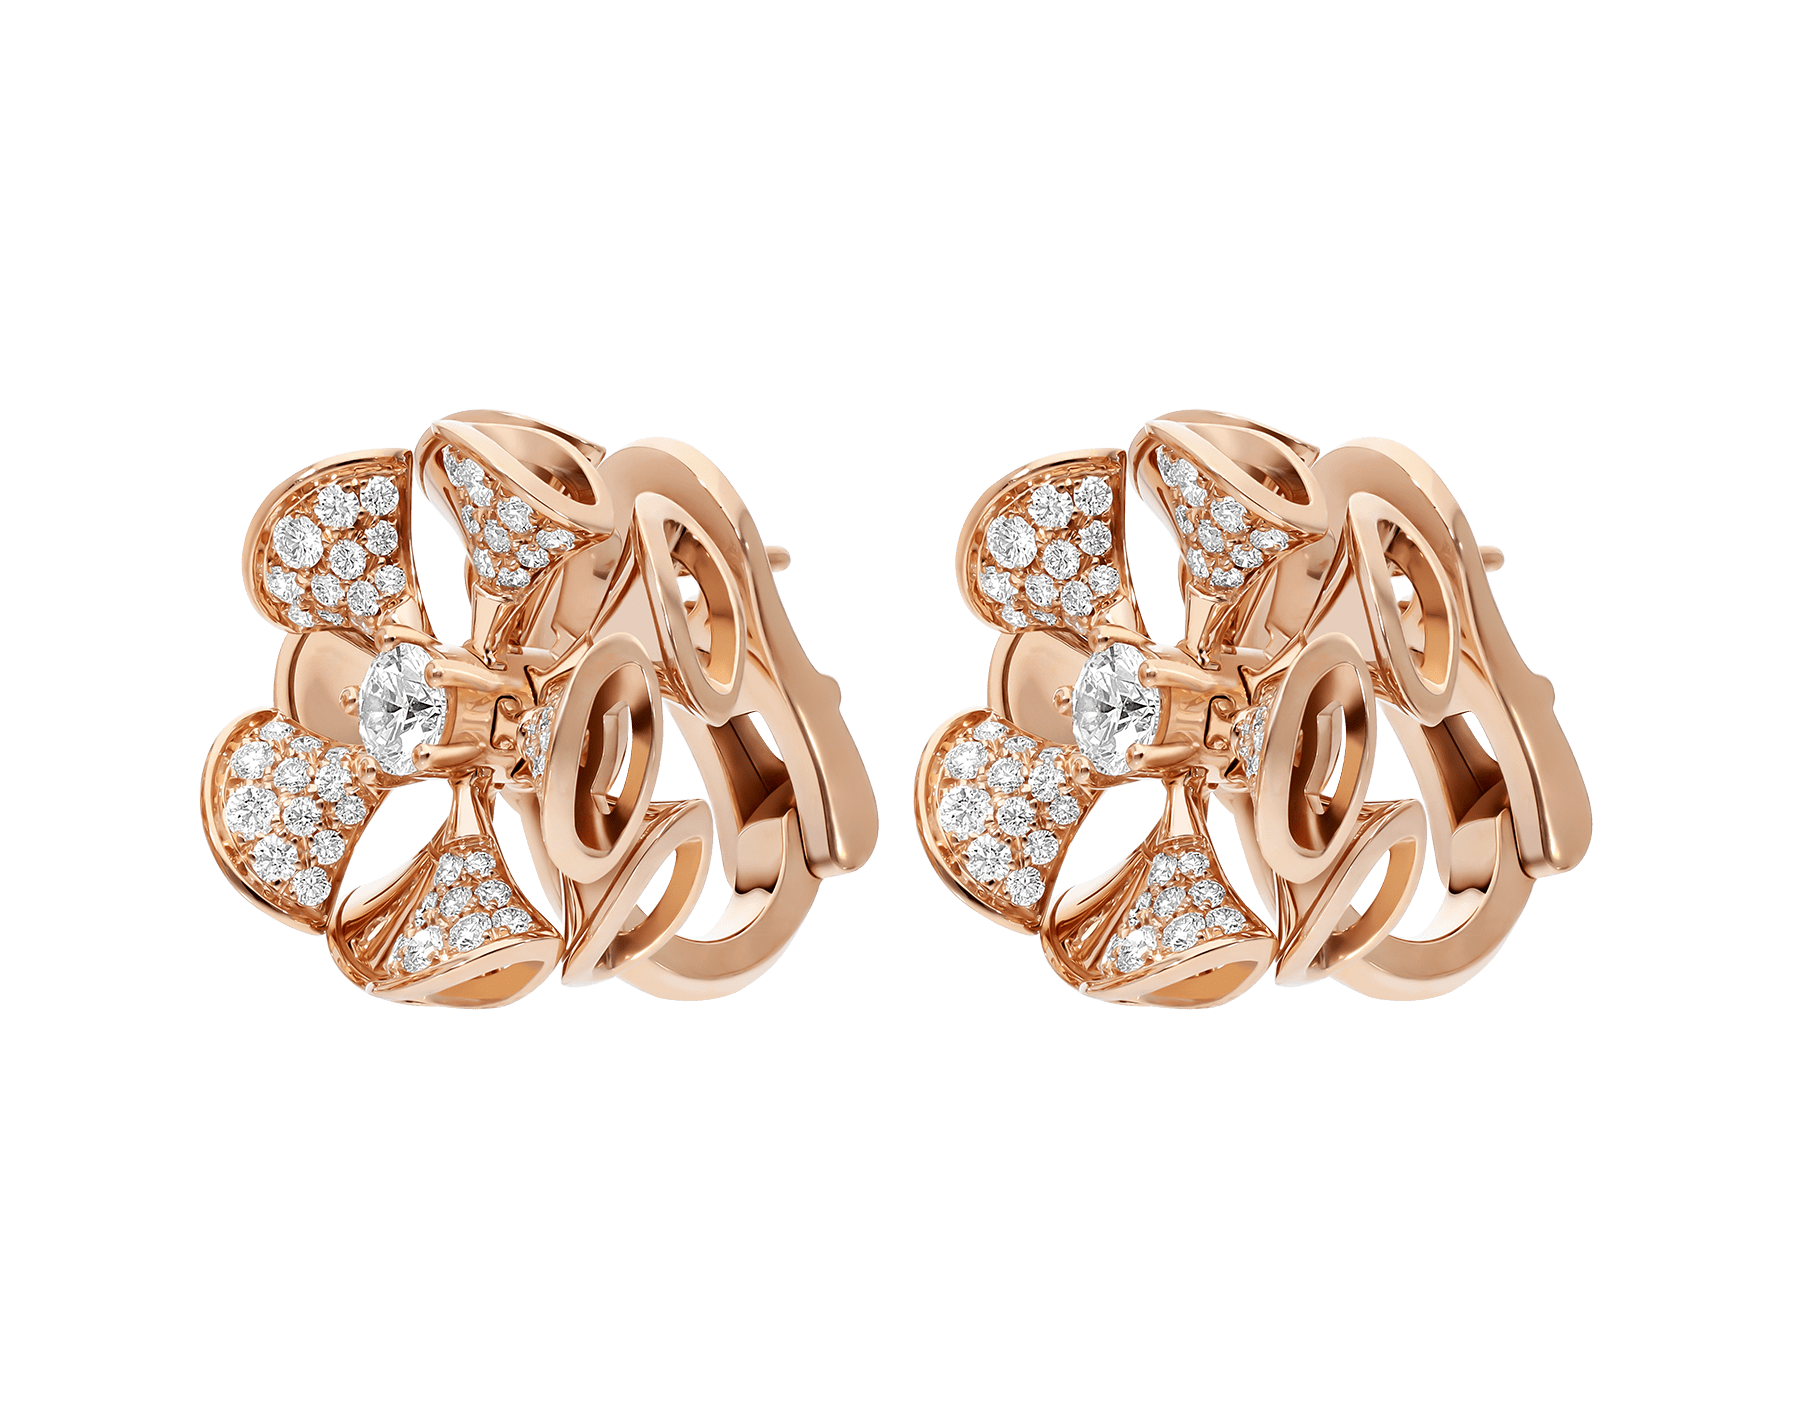 DIVAS' DREAM earrings in 18 kt rose gold set with a central diamond and pavé diamonds. 350784 image 2